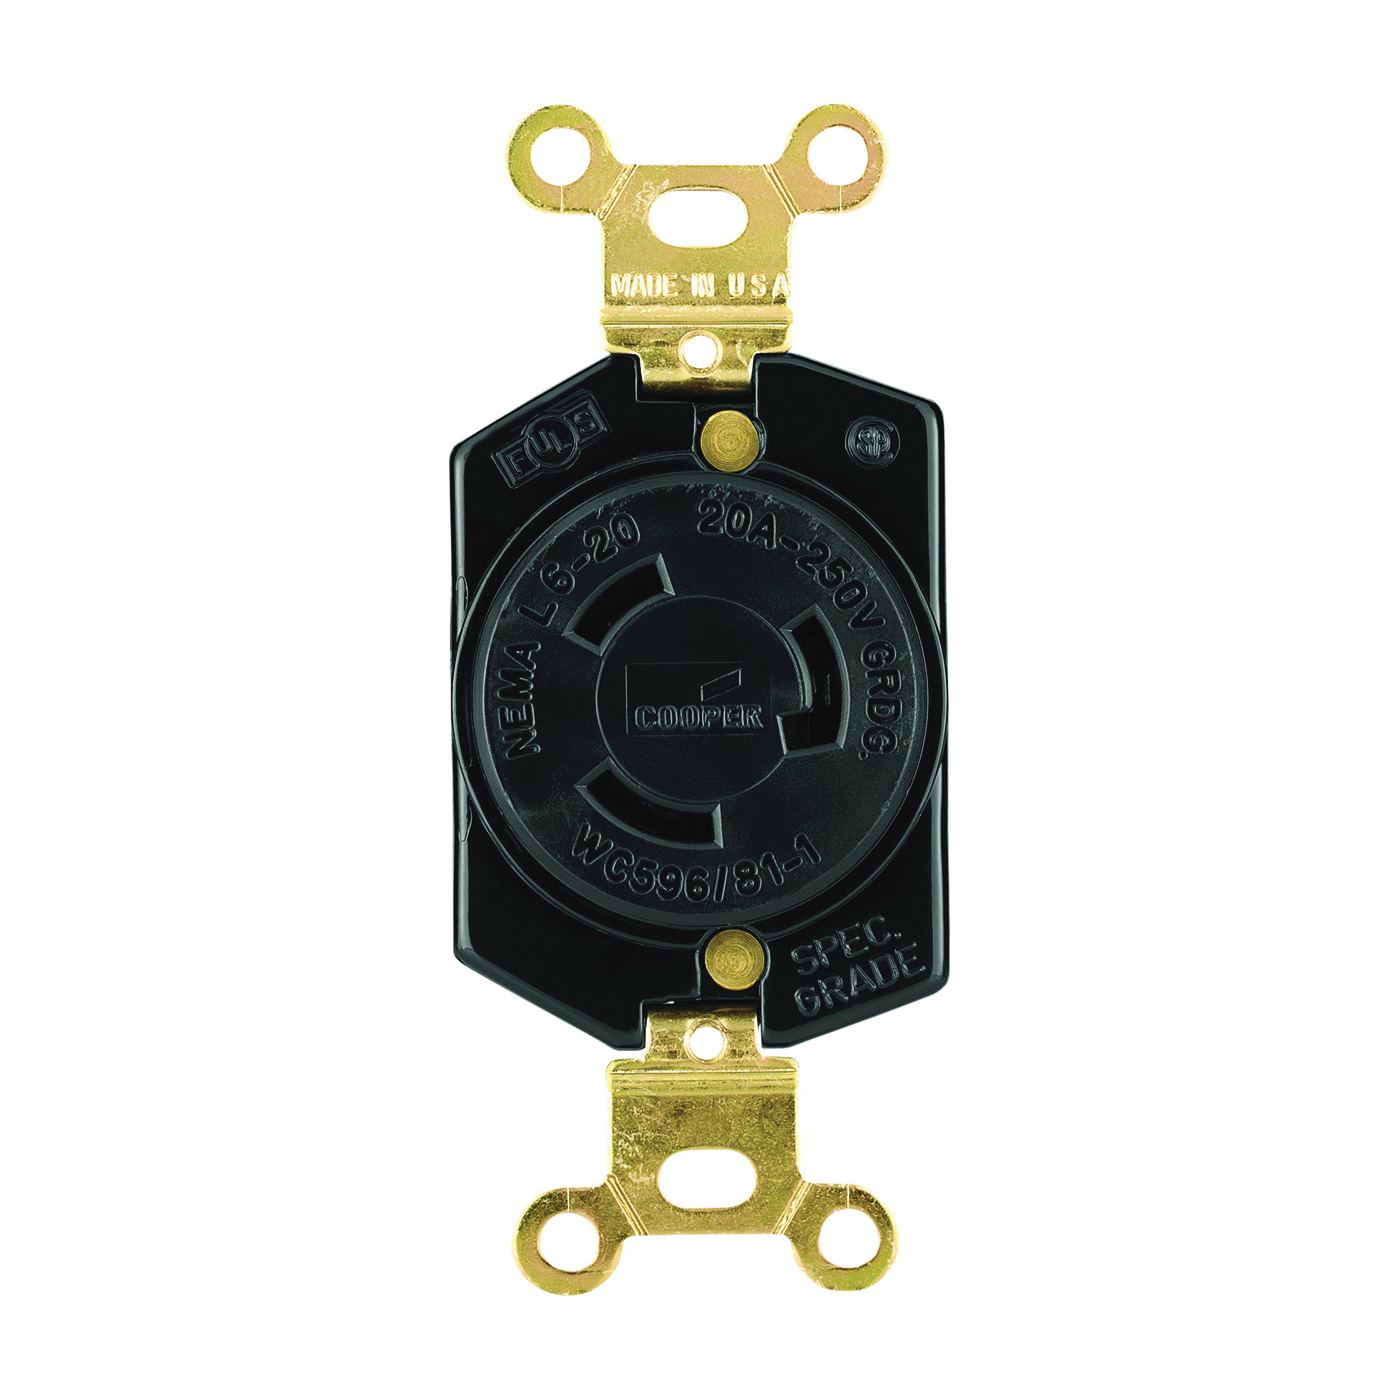 Picture of Eaton Wiring Devices L620R Single Receptacle, 2-Pole, 250 V, 20 A, Back, Side Wiring, NEMA L6-20, Black